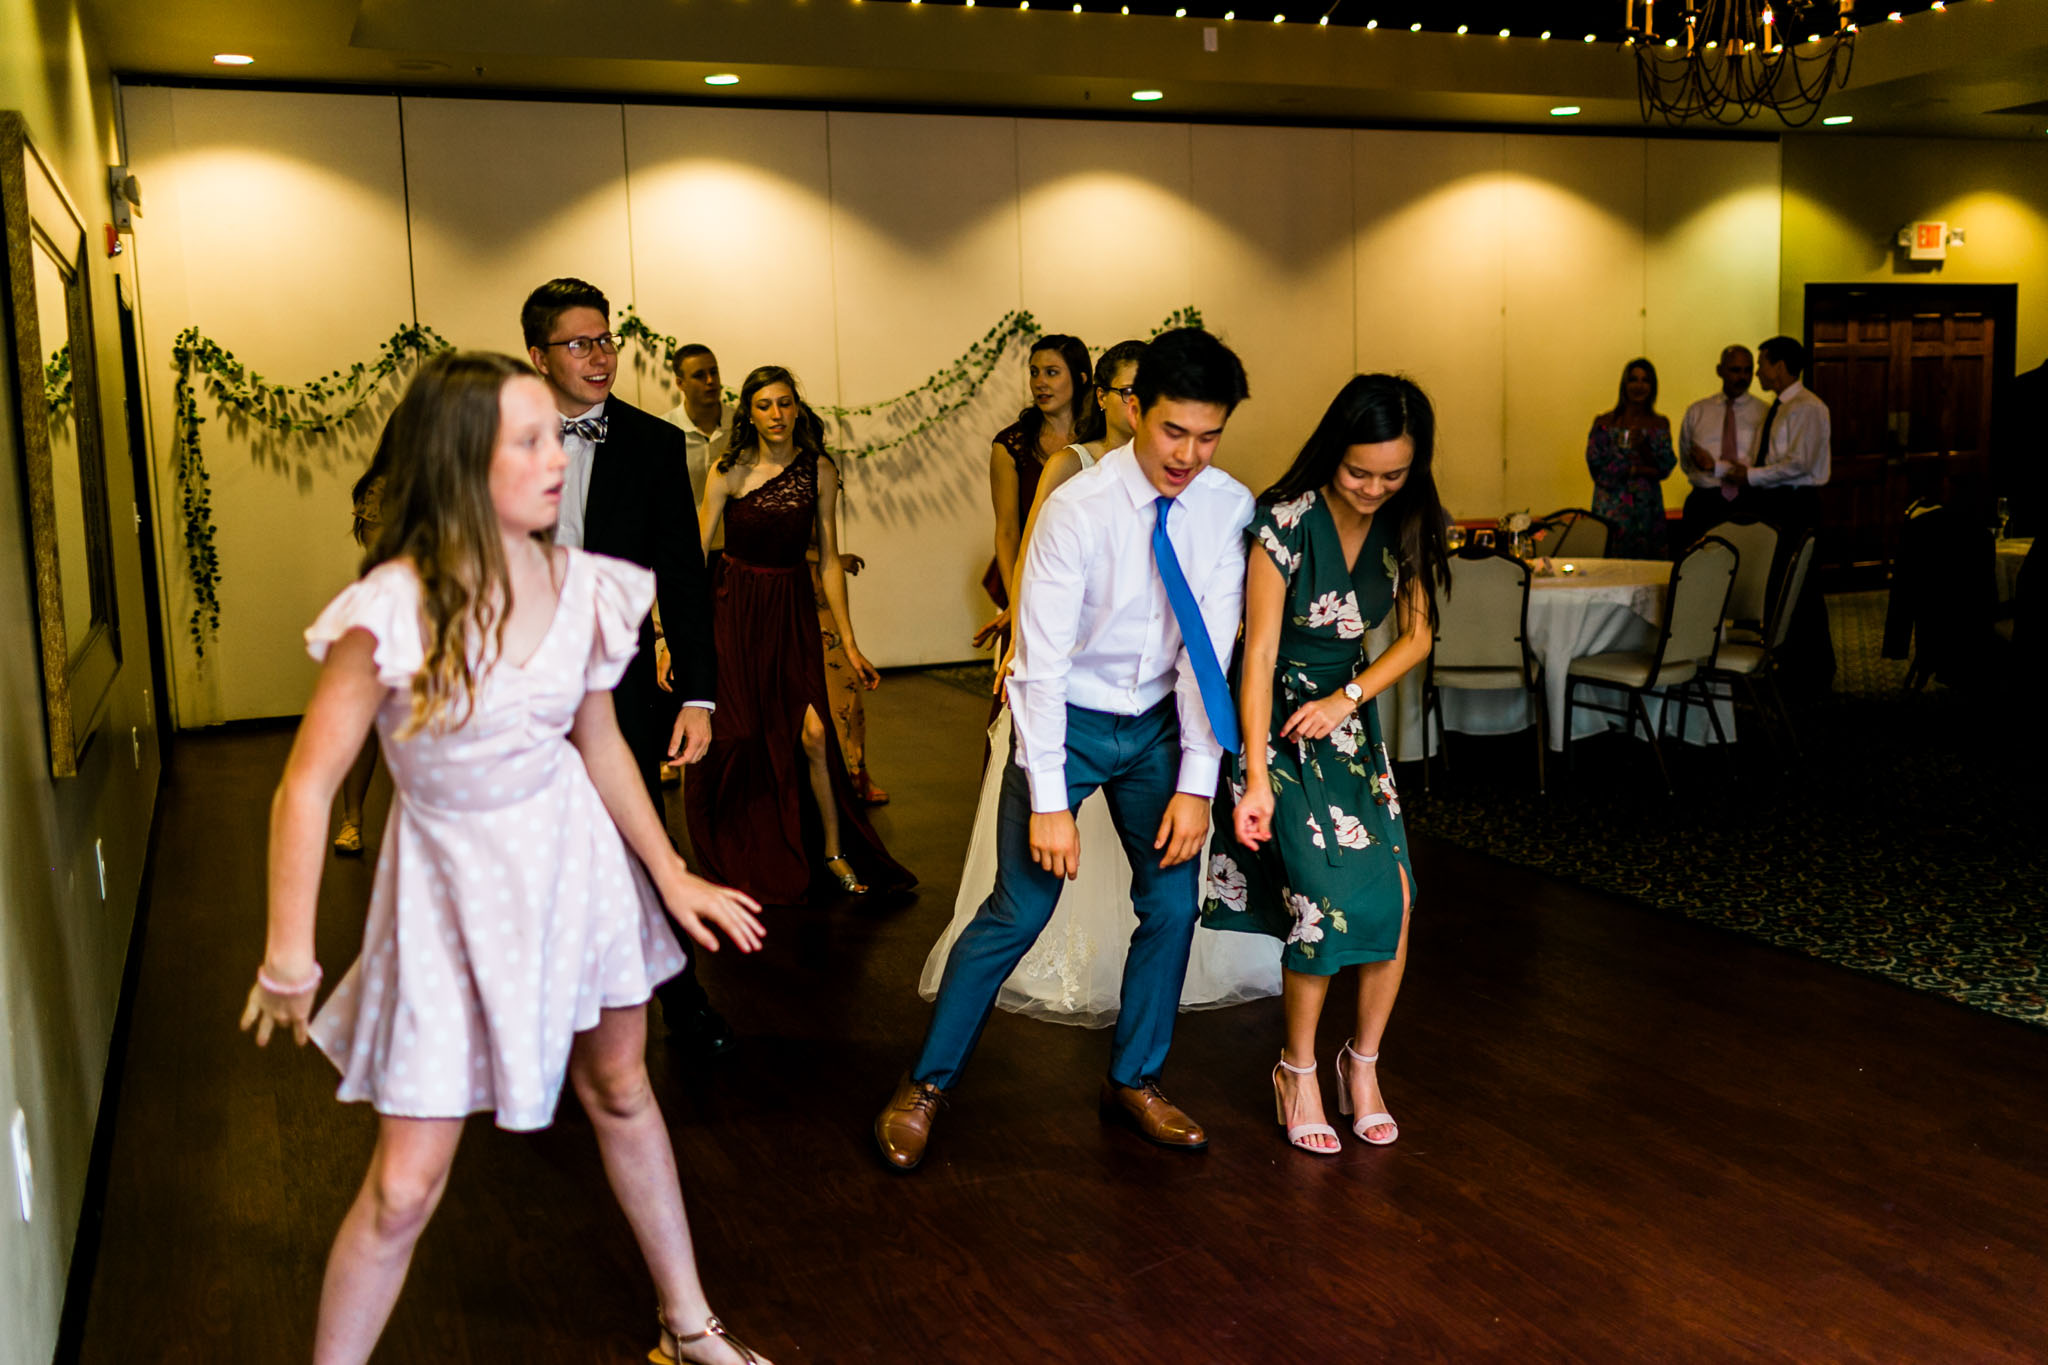 Wedding dancing at Royal Banquet Conference Center | Raleigh Wedding Photographer | By G. Lin Photography